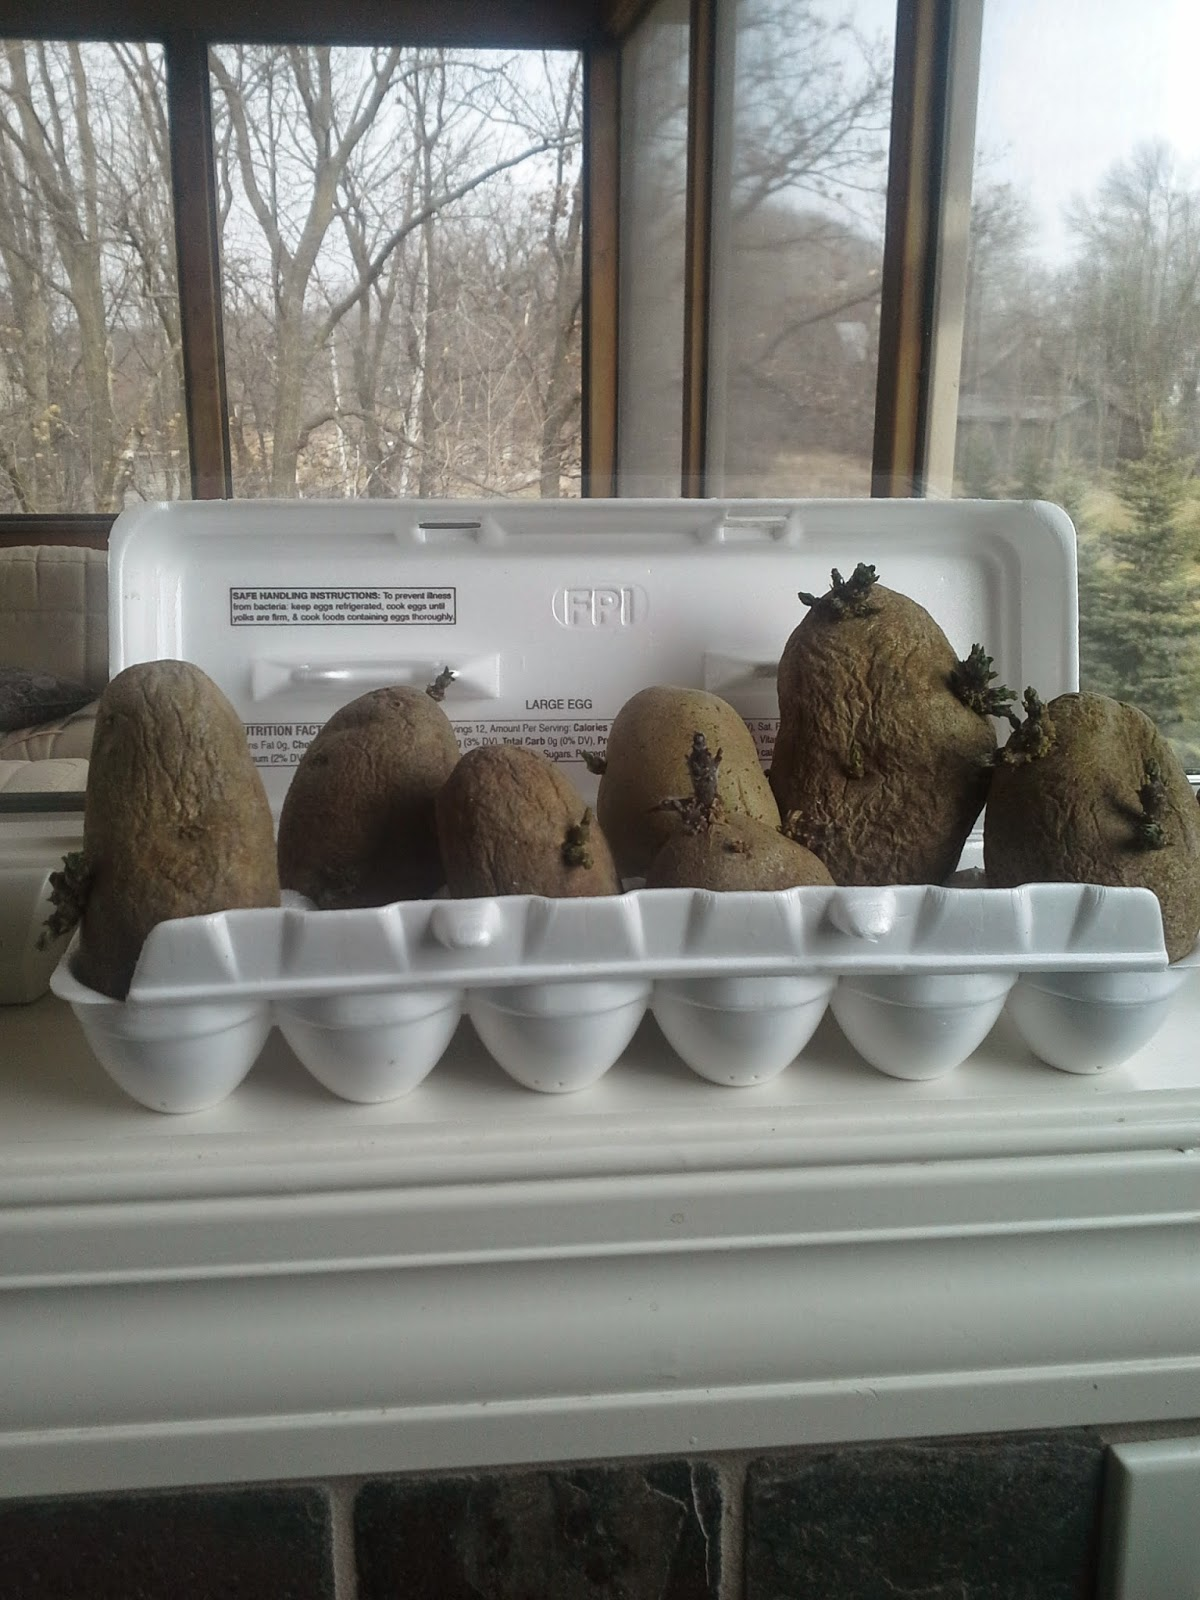 Growing potatoes and how to get them to to chit